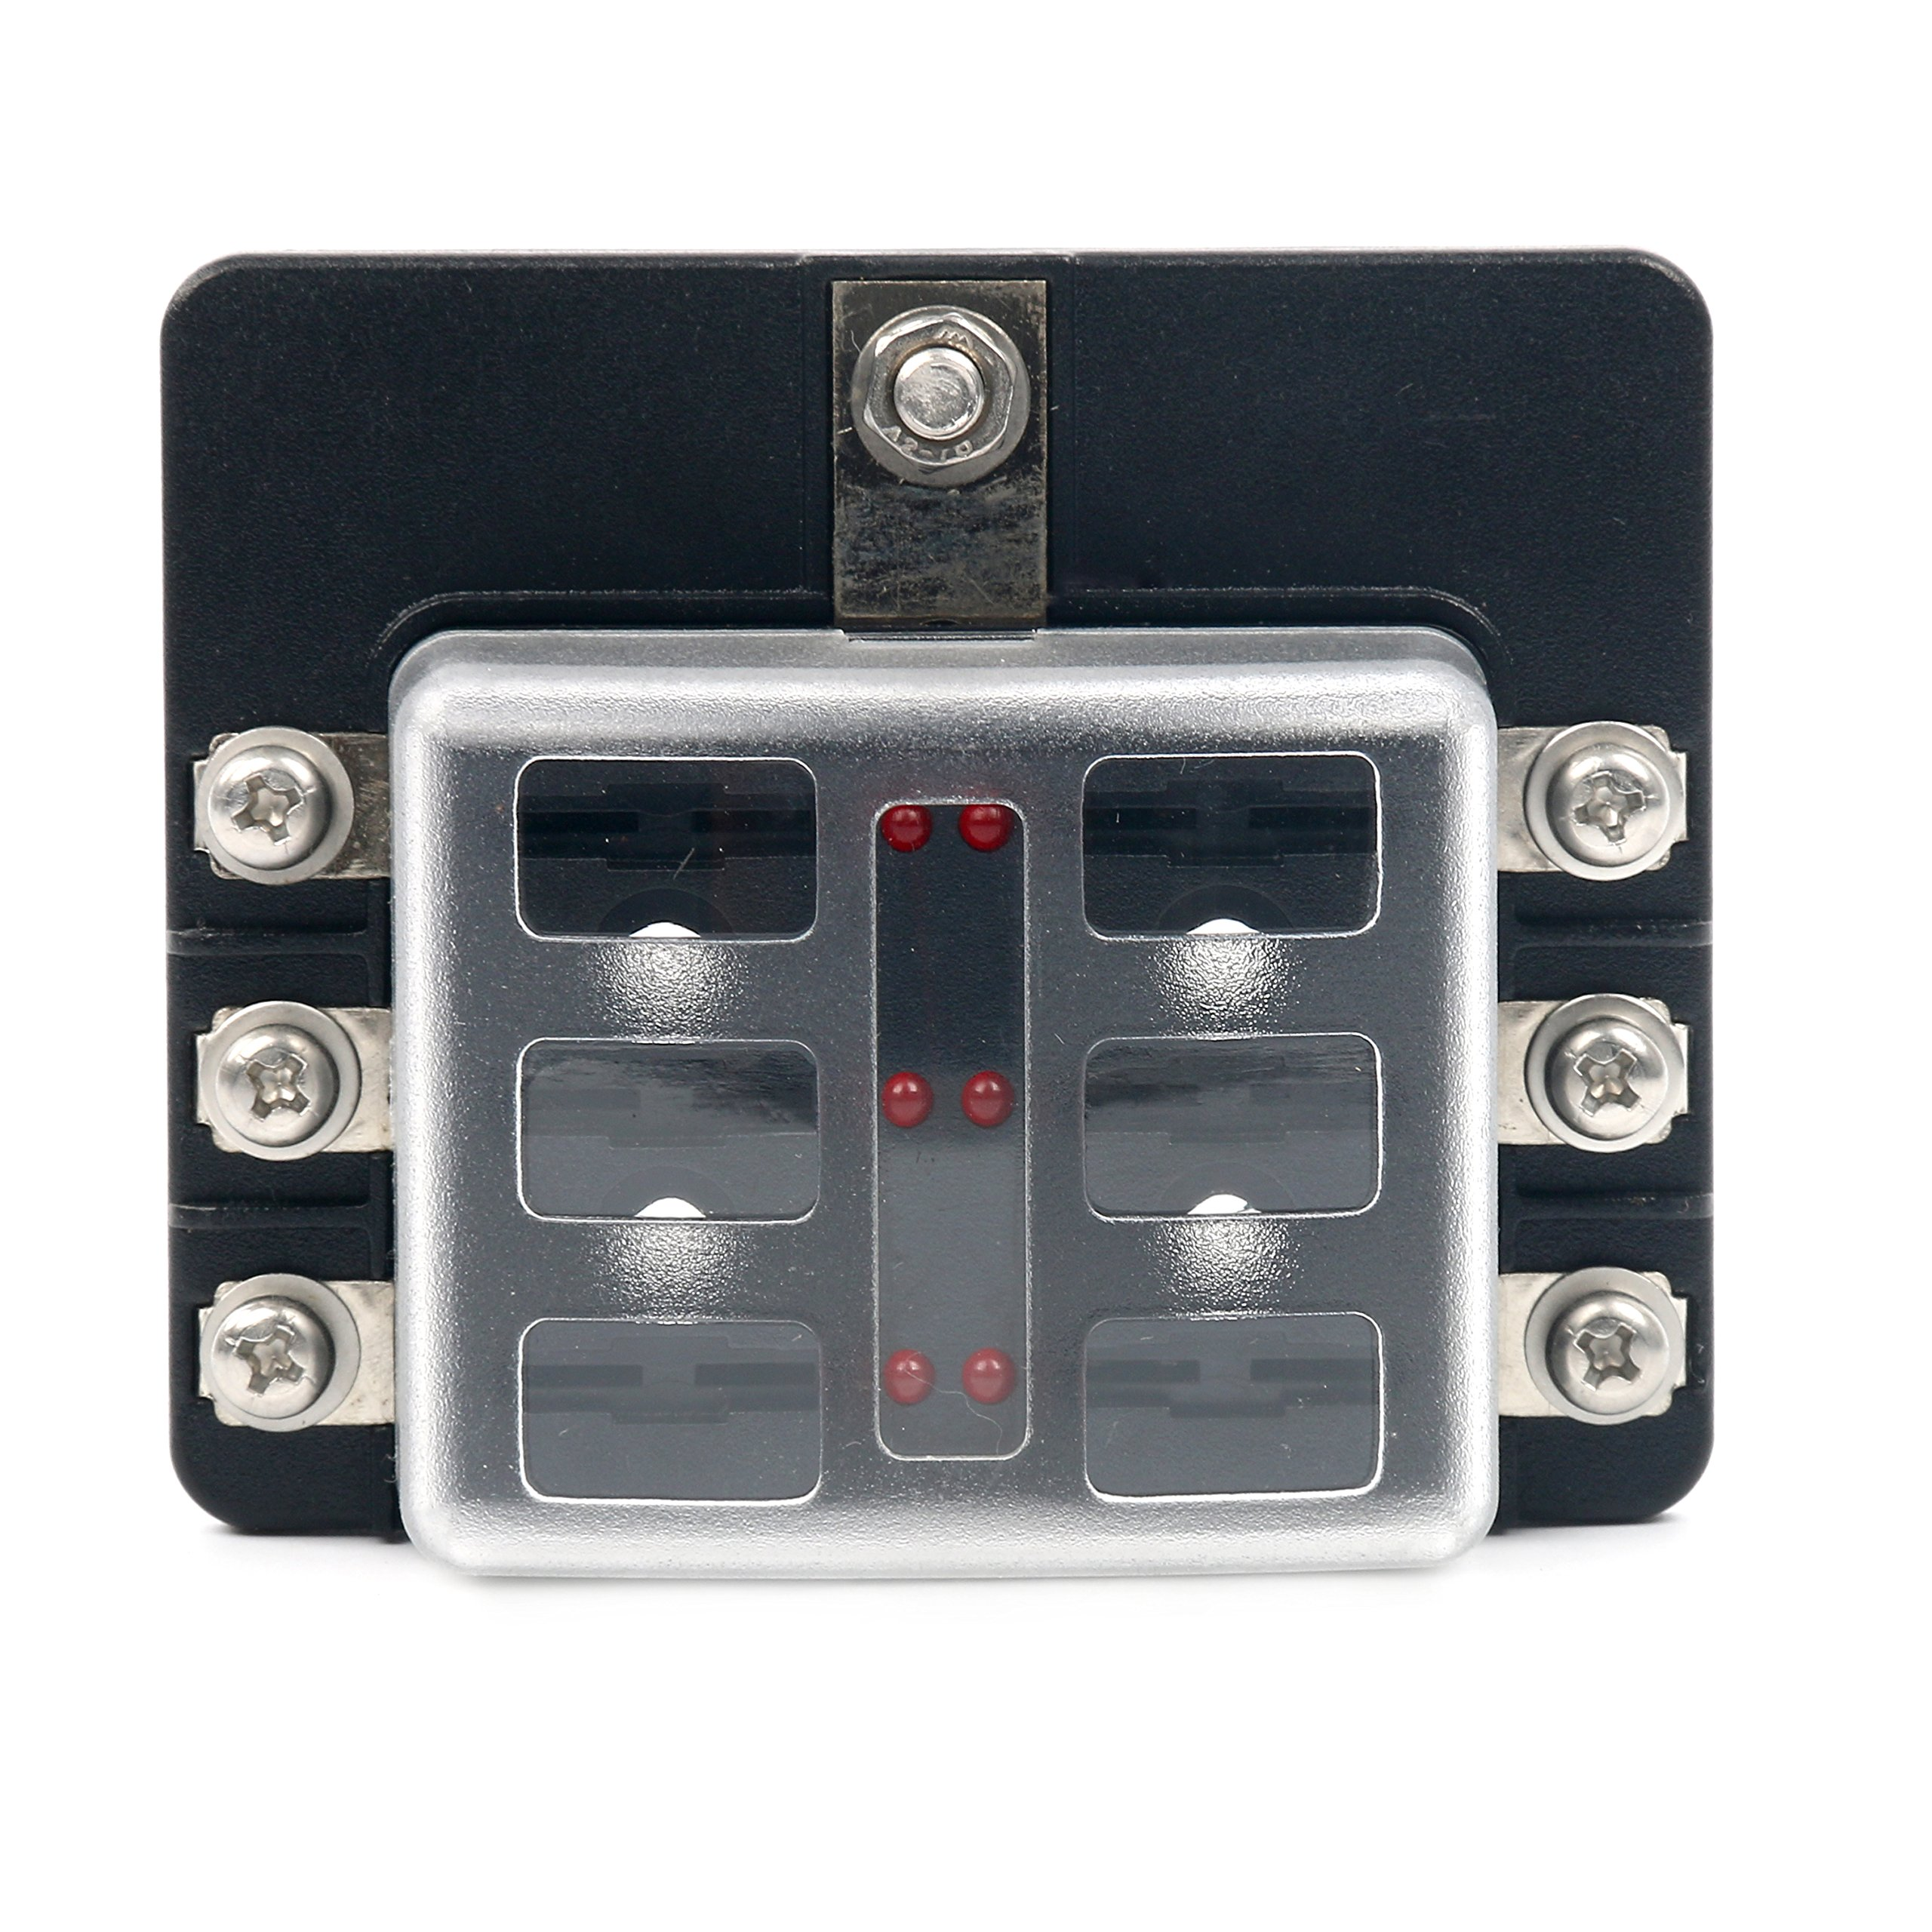 Yaetek 6 Way Terminals Circuit Atc Ato Car Auto Blade Fuse Box Block Automotive Holder Led Indicator For Blown Protection Cover 100 Amps